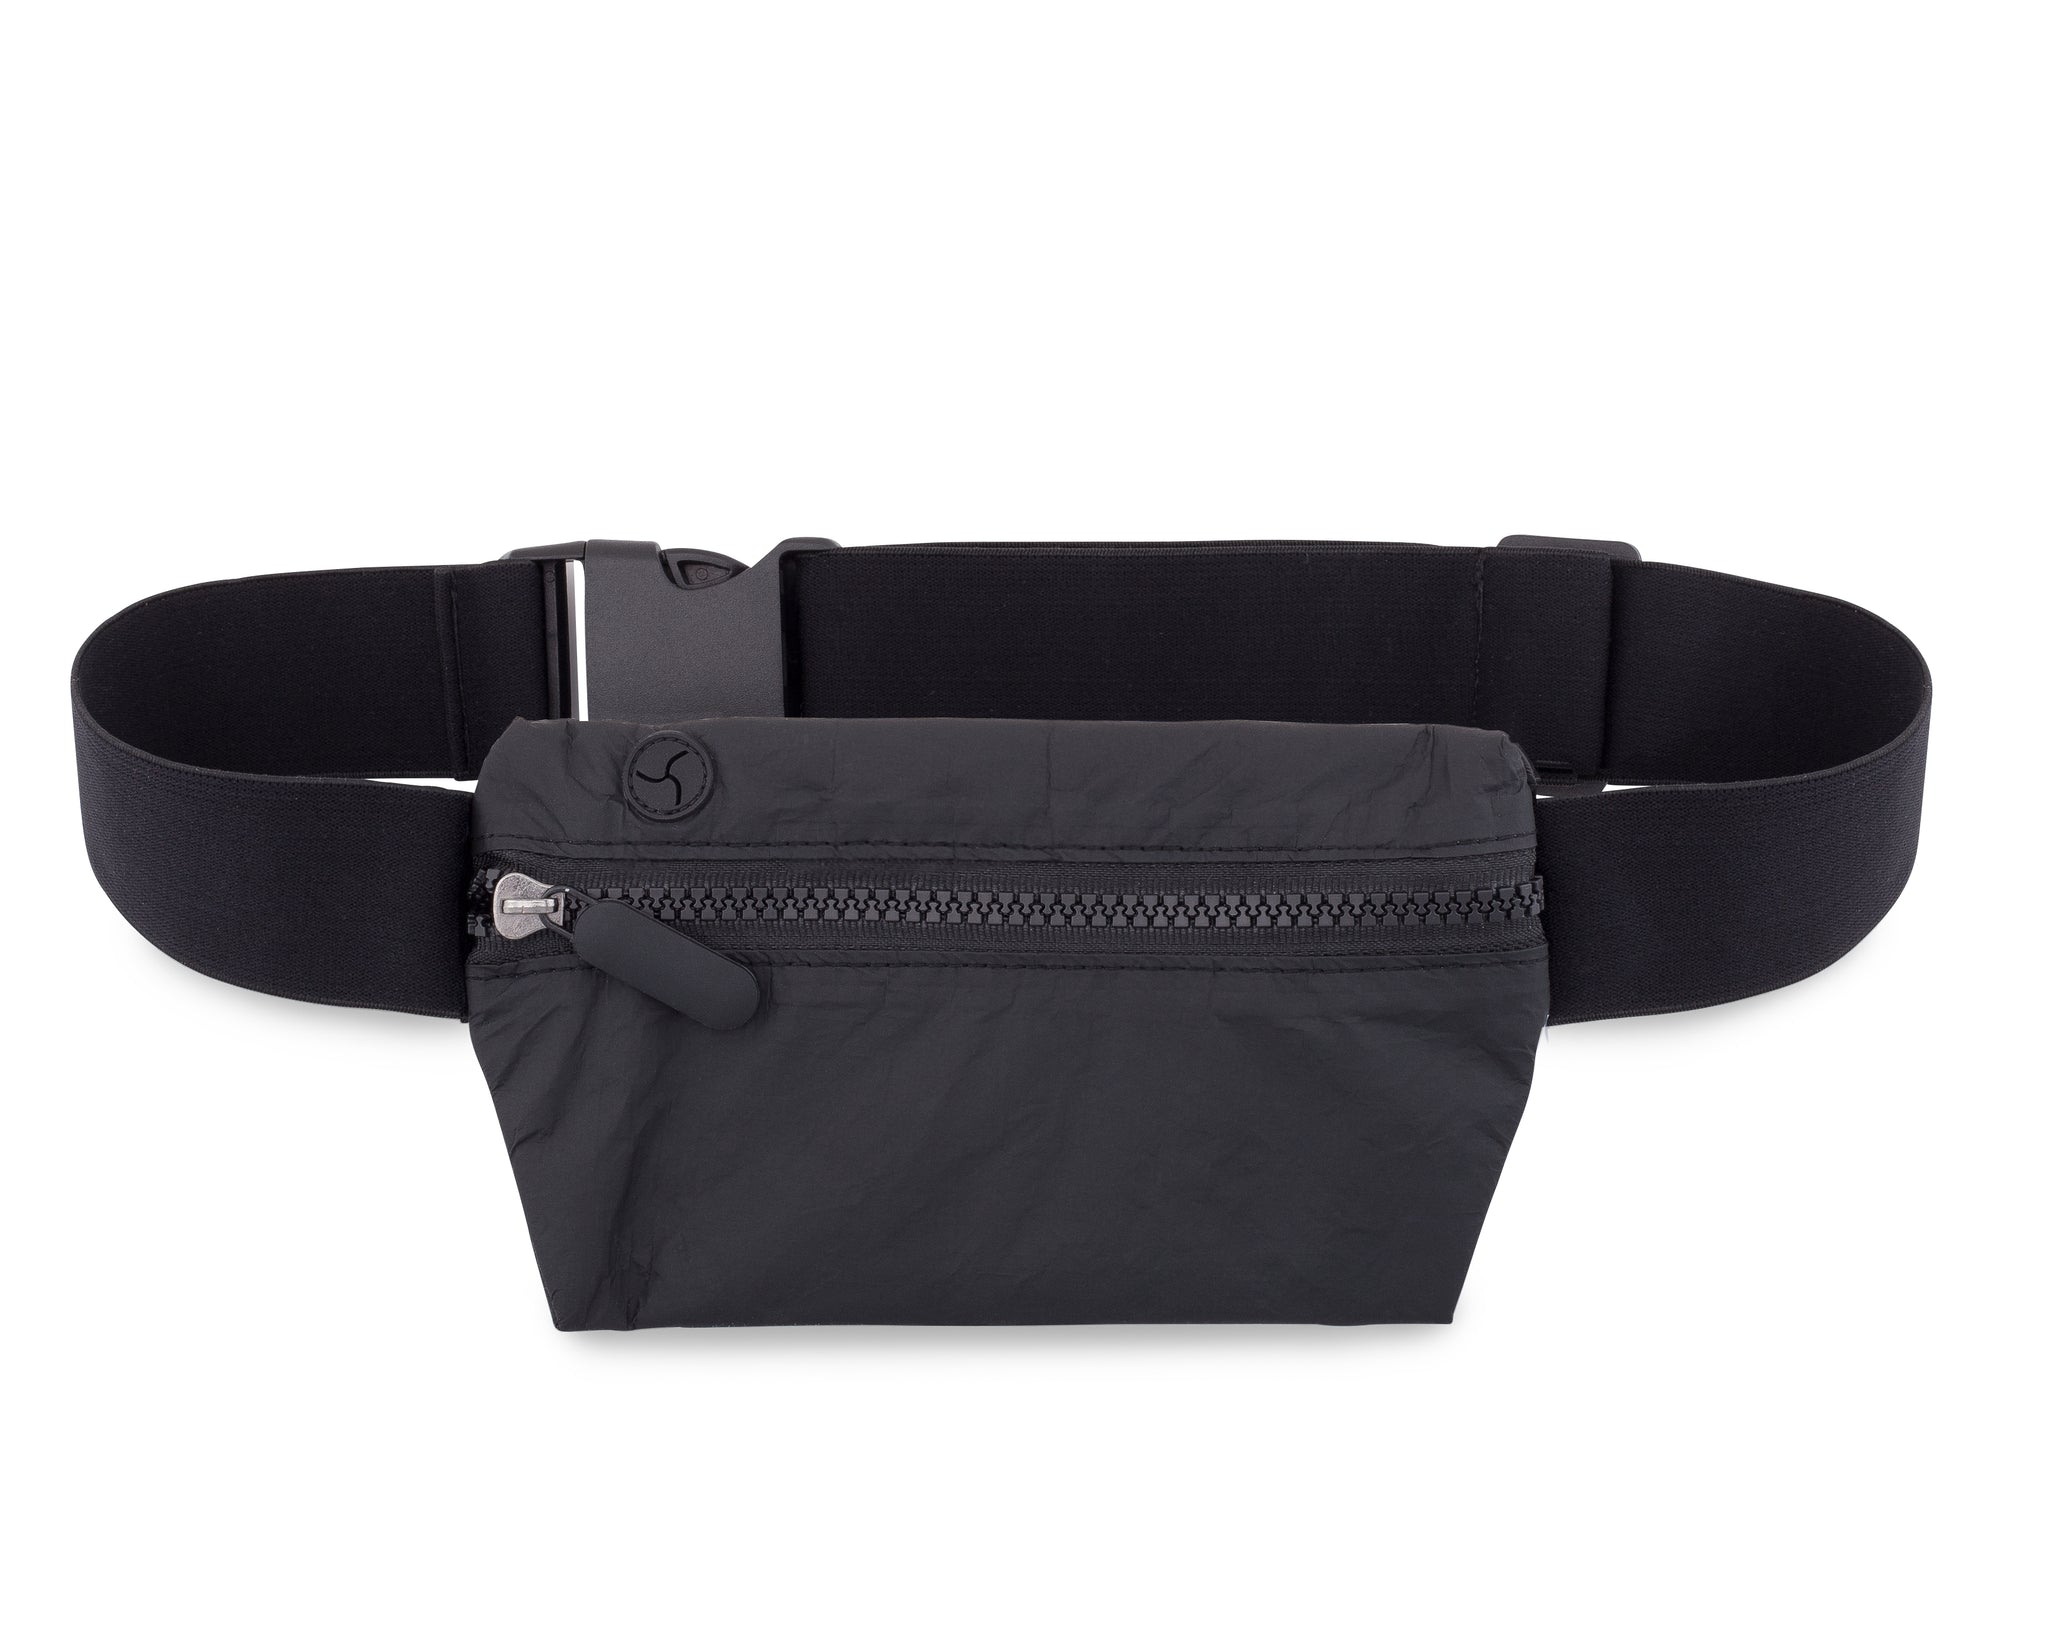 Fanny Packs - Belt Bag - Lightweight - Cute Fanny Pack - Black